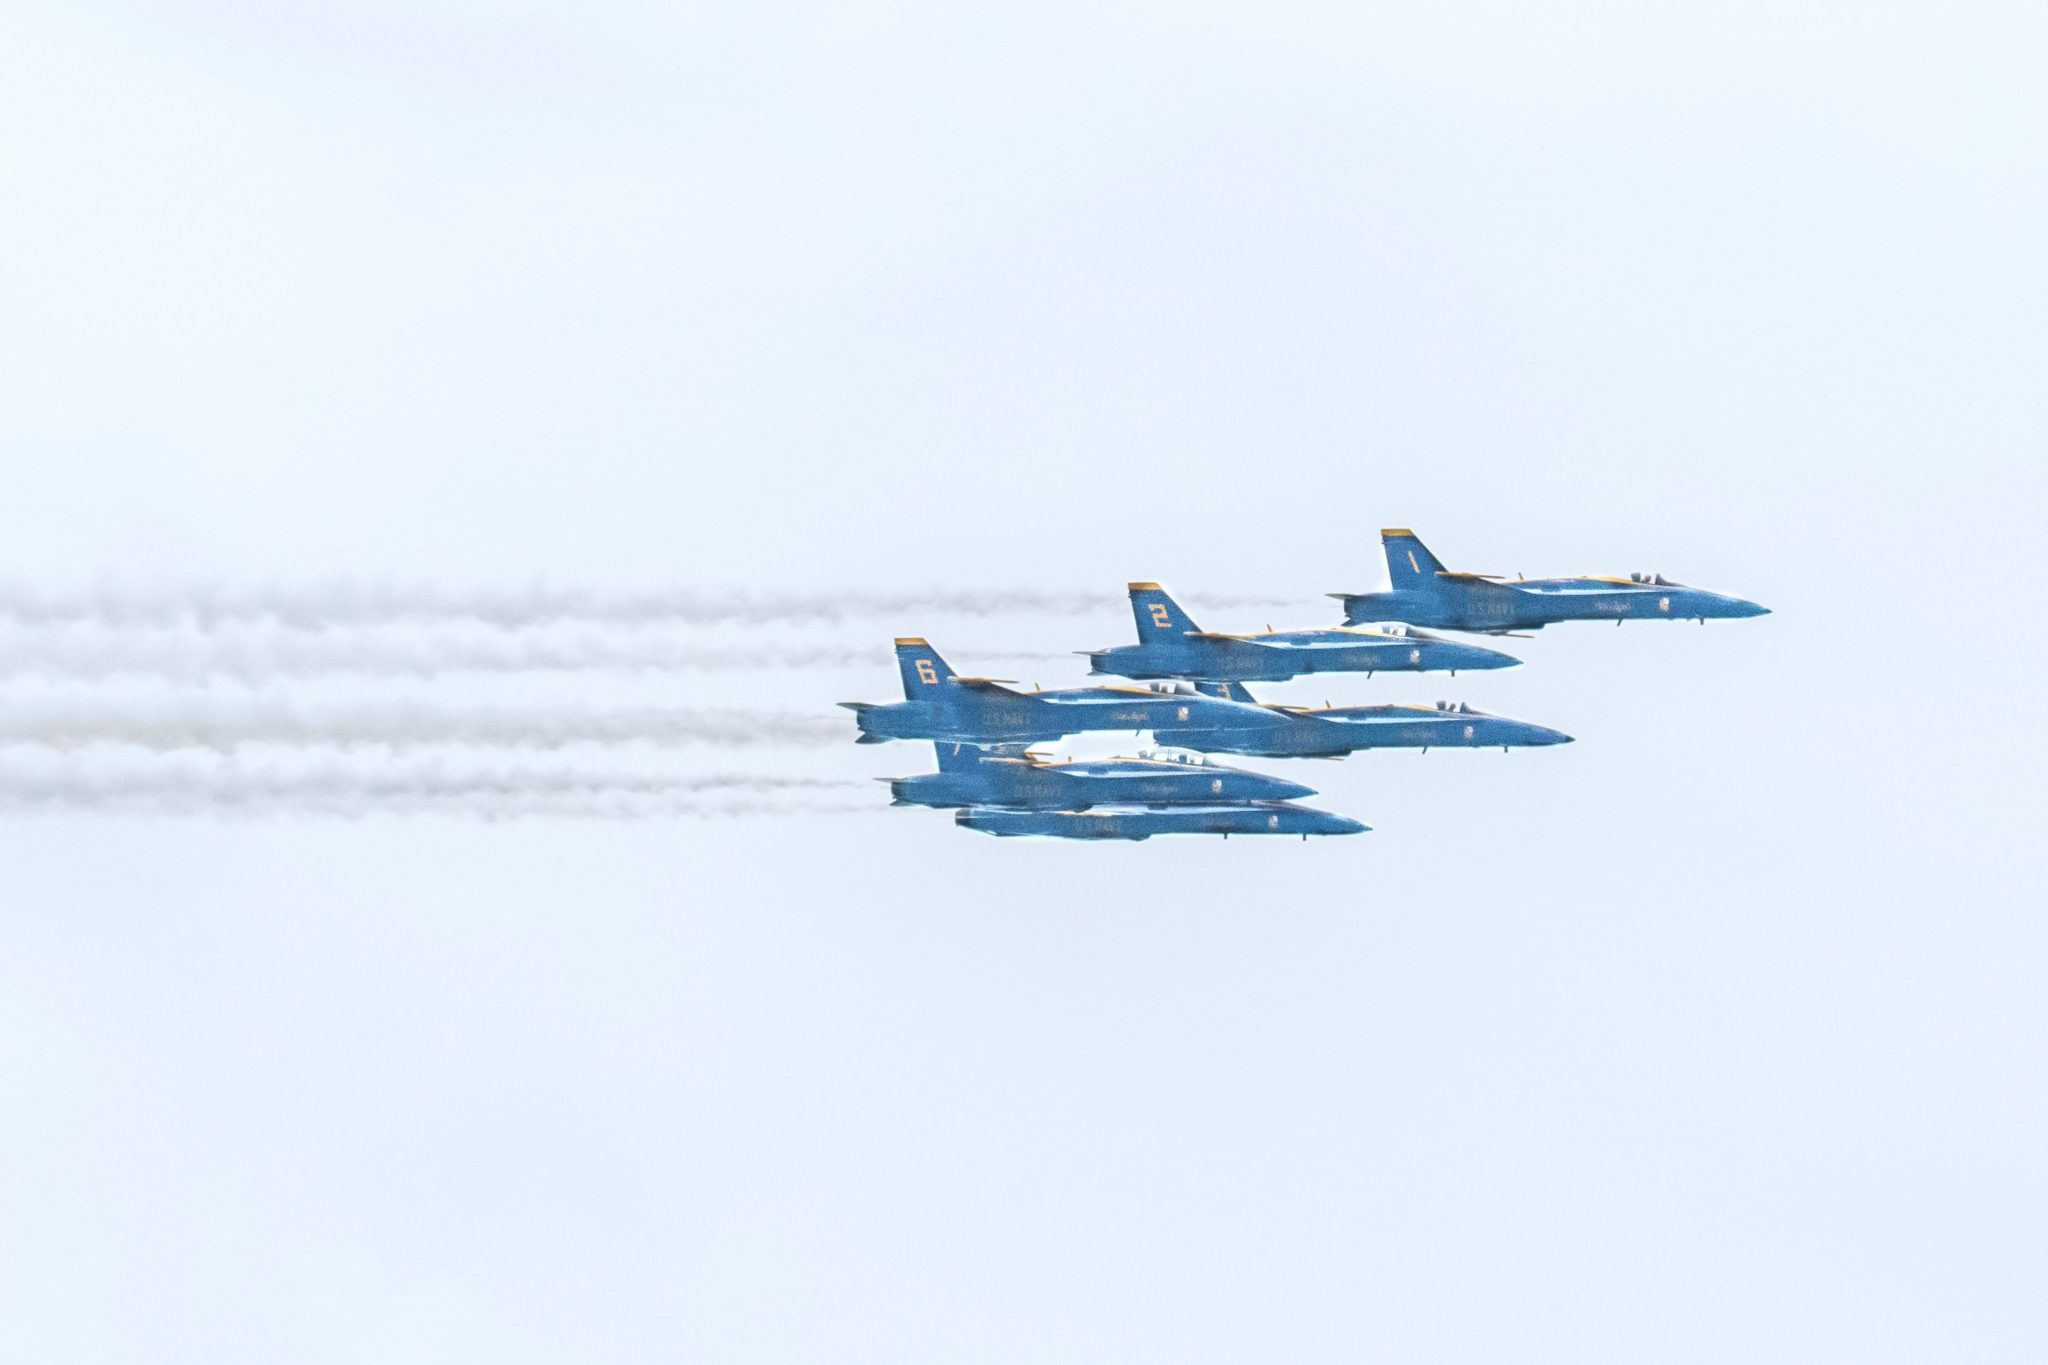 PHOTOS: The July 4 Flyovers in DC